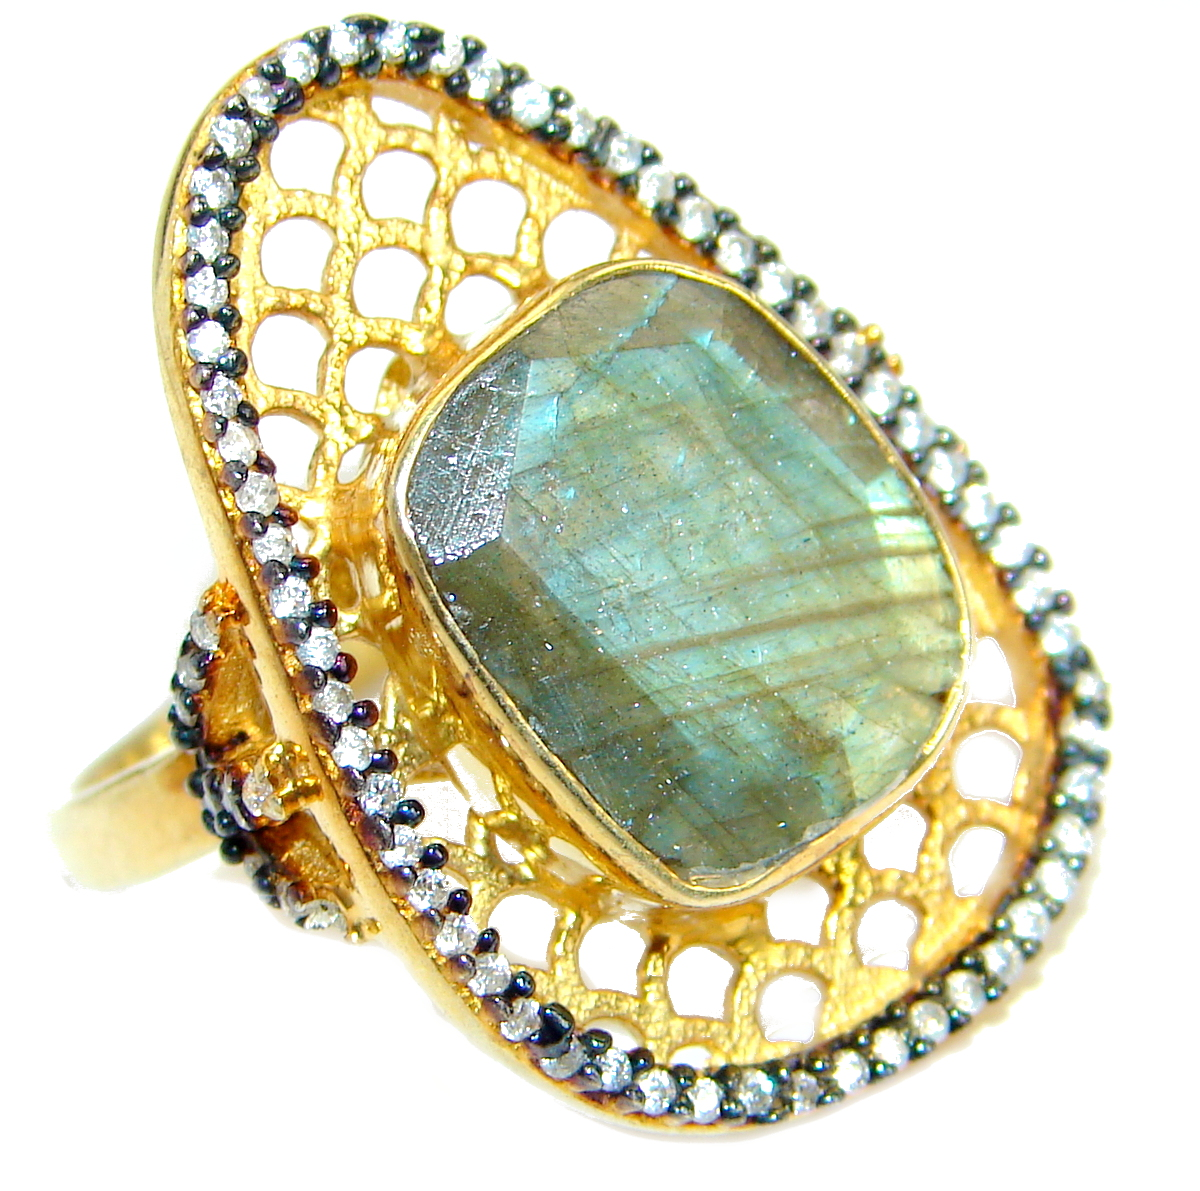 Passiom Fruit Natural 22.5 ct. Labradorite Gold over .925 Sterling Silver Ring s. 7 128495